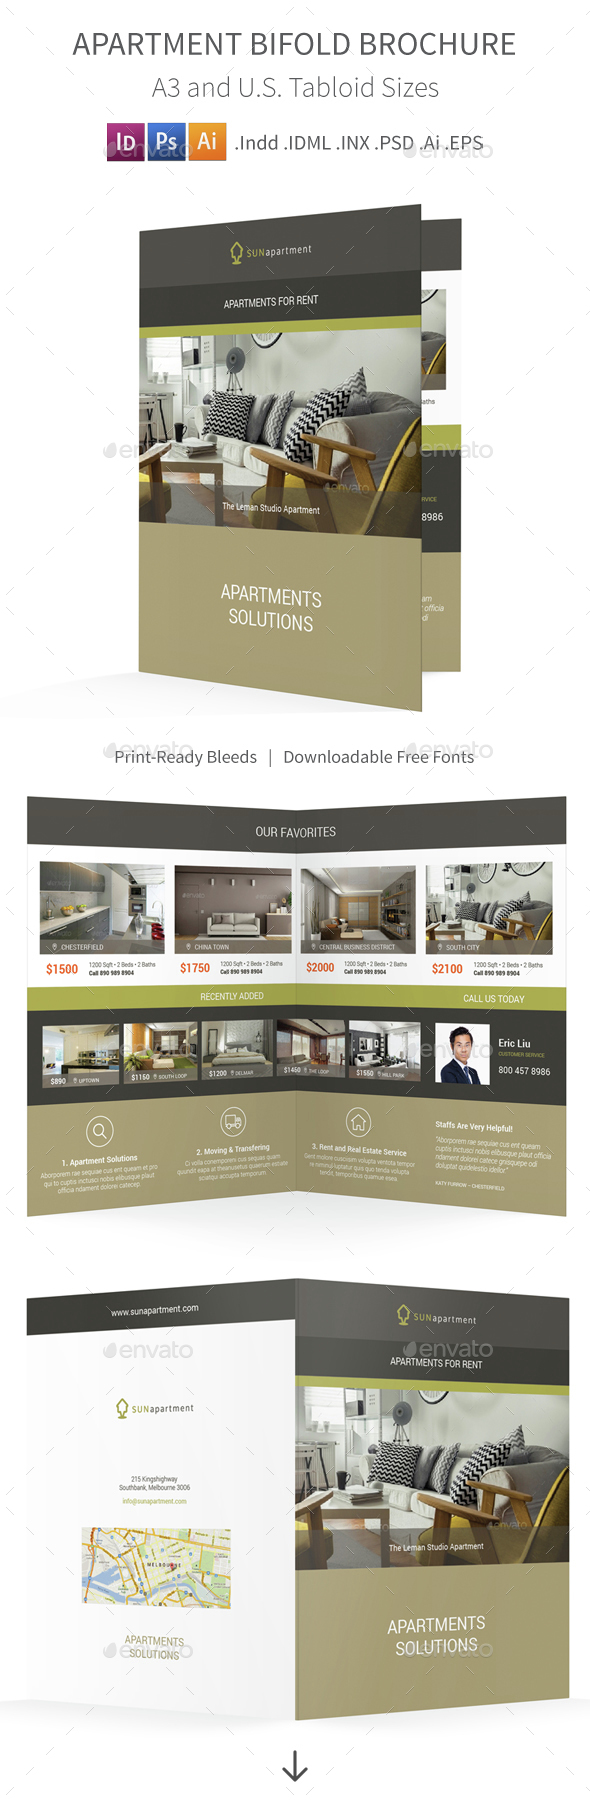 Apartment For Rent Bifold / Halffold Brochure 2 - Informational Brochures